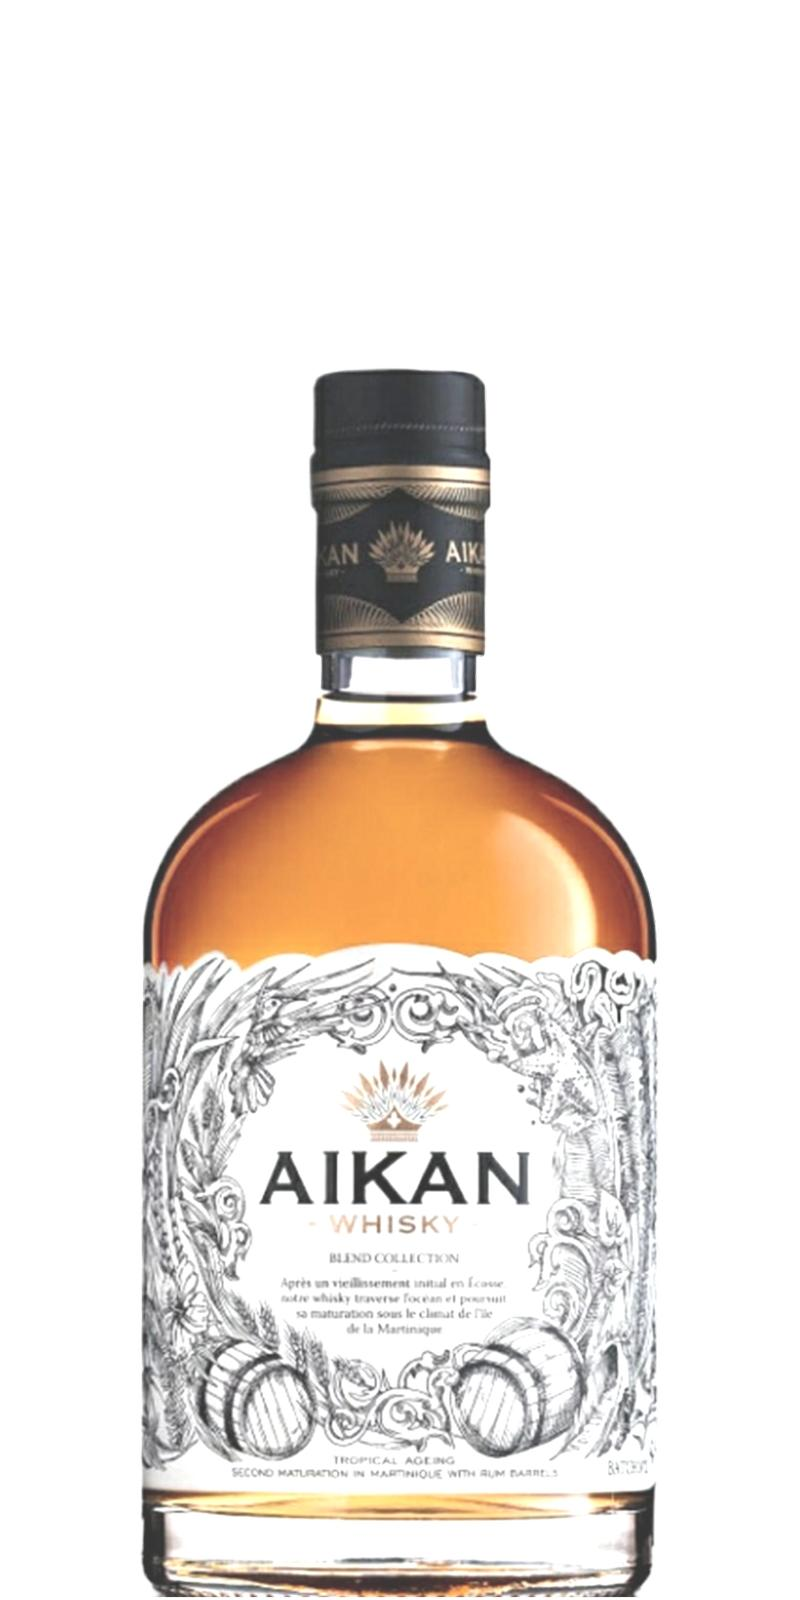 Aikan Blend Collection N°1